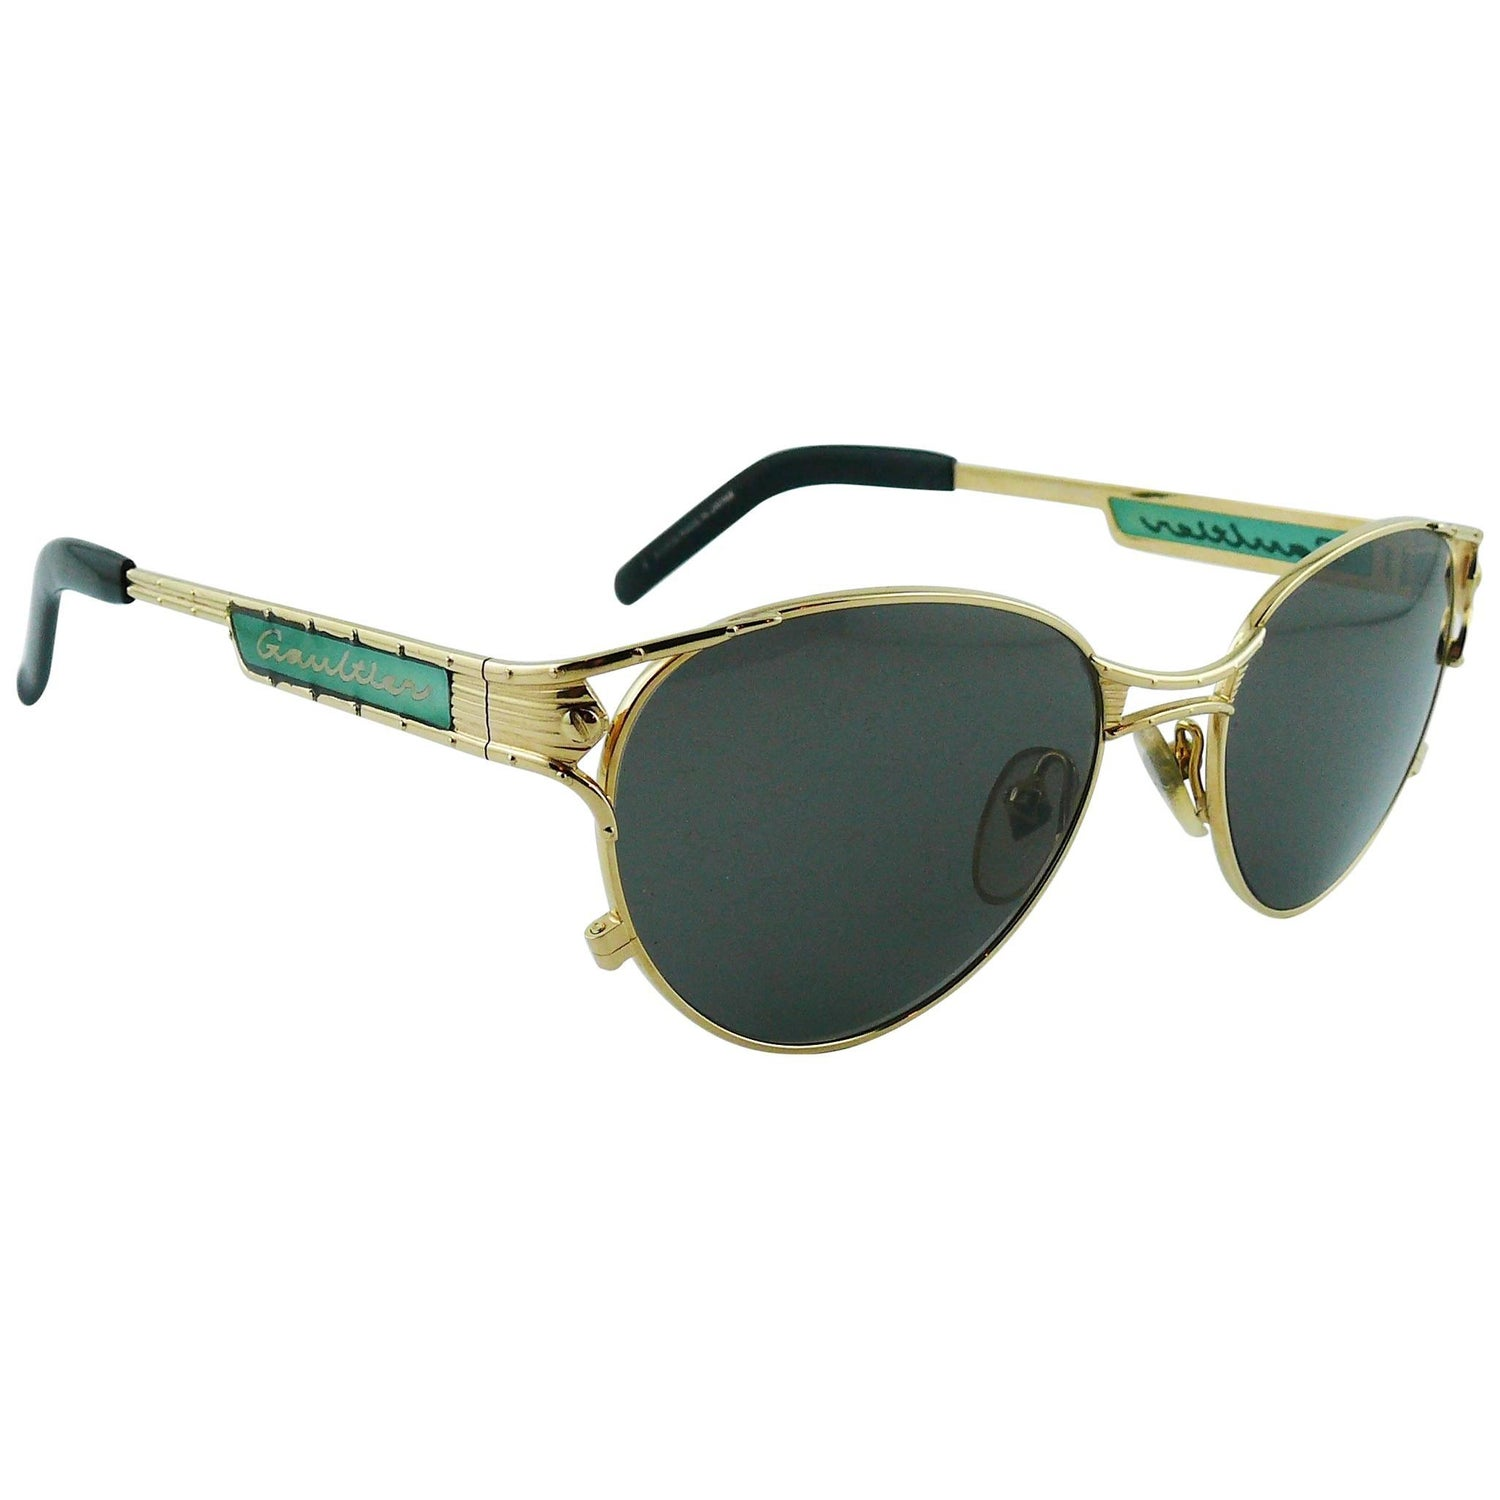 debee1bcb41 Vintage Jean Paul Gaultier Sunglasses - 74 For Sale at 1stdibs